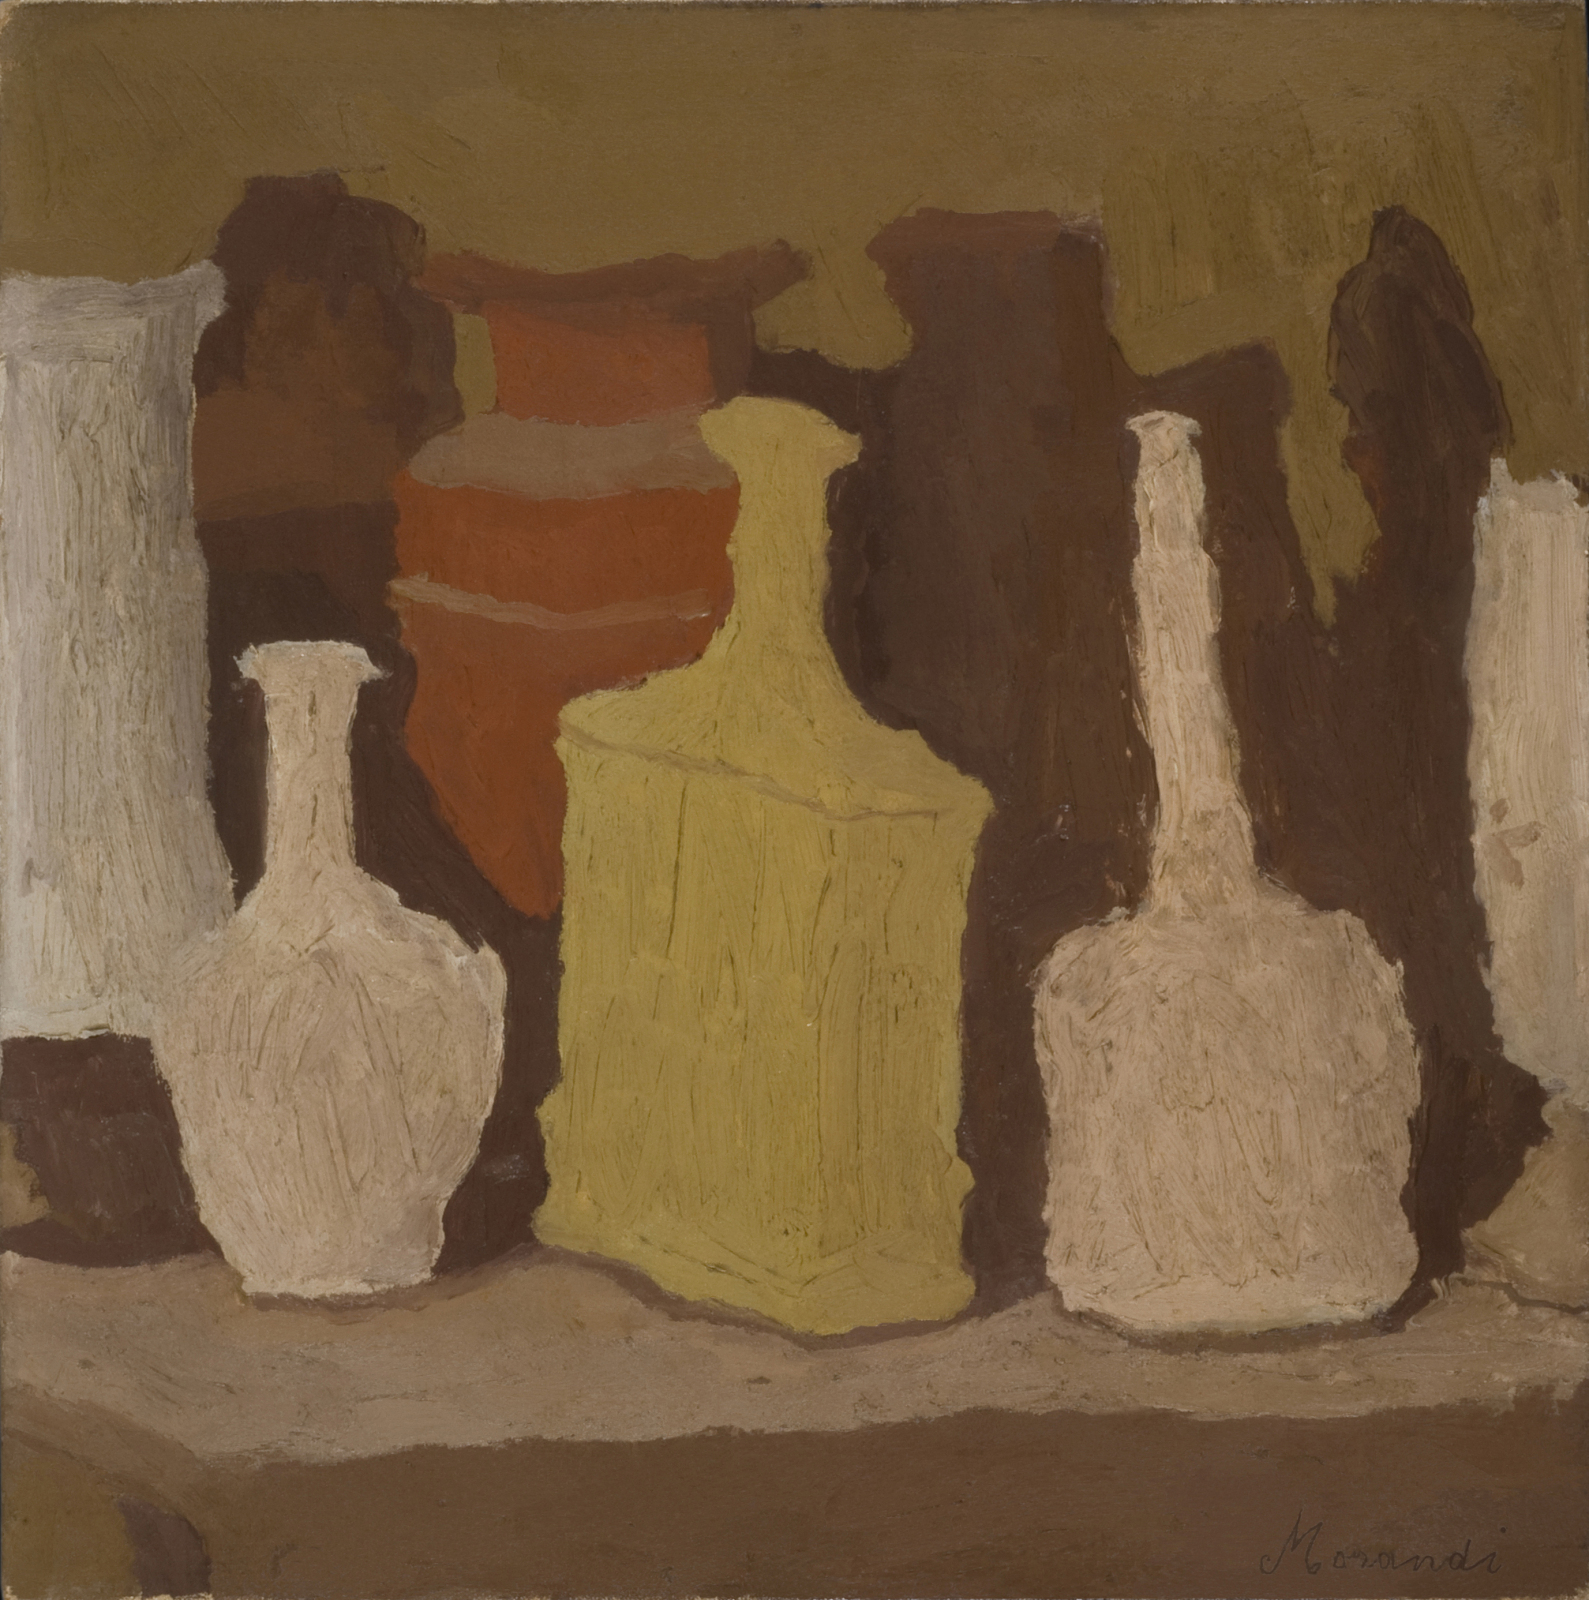 Giorgio Morandi, Still Life, 1931, oil on canvas, 16 1/2 x 16 1/2 inches (Privat